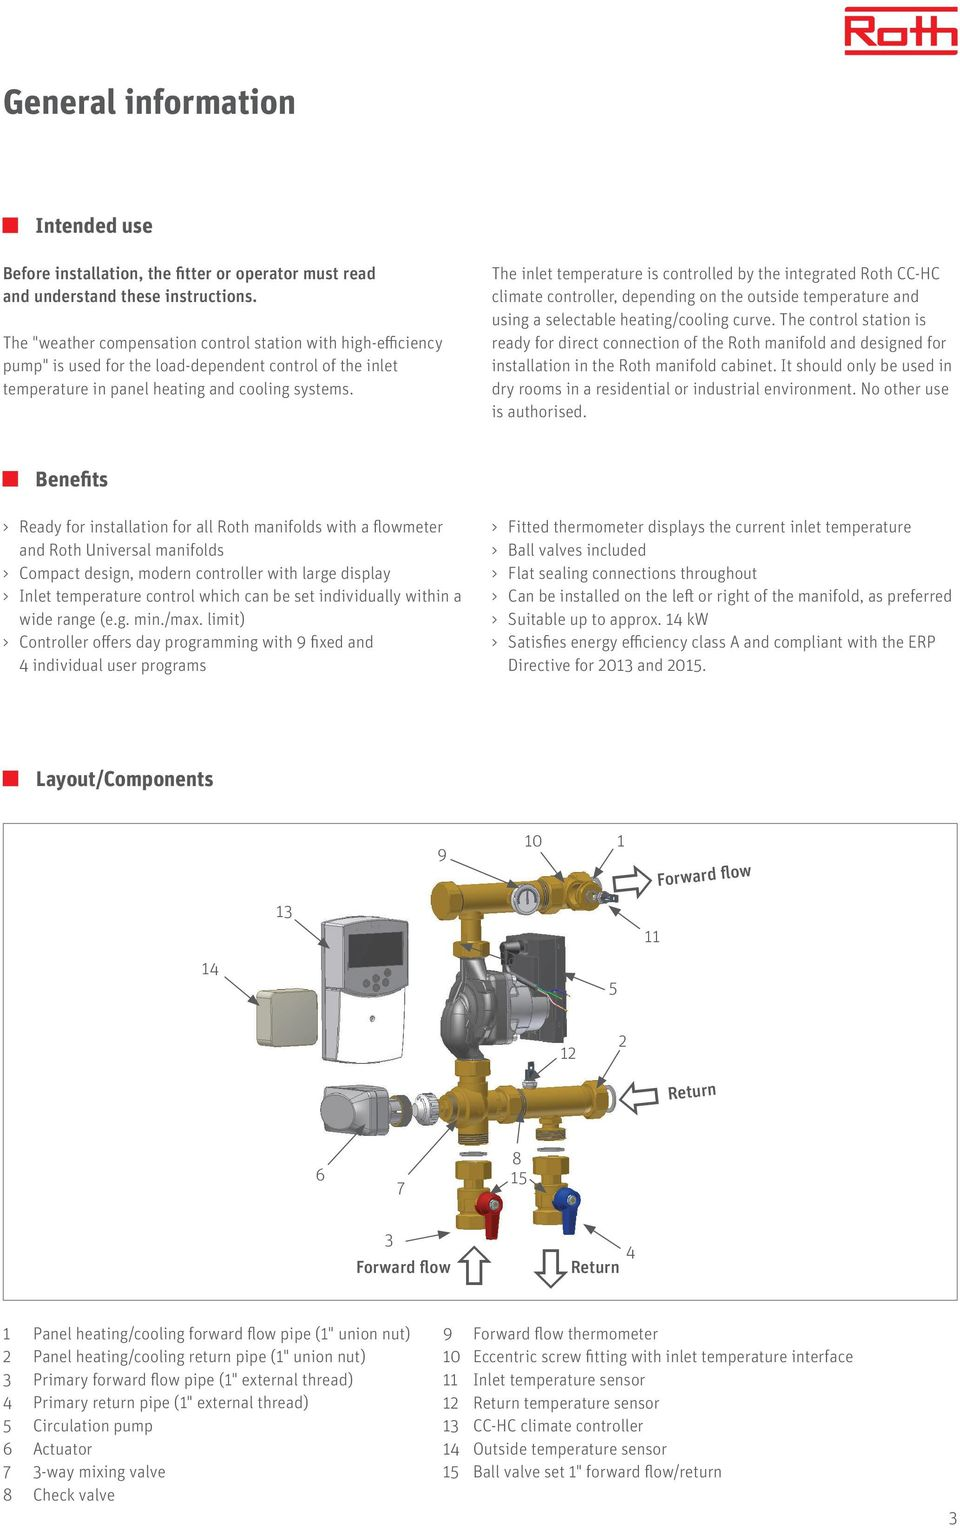 Roth Weather Compensation Control Station With High Efficiency Pump Drayton Central Heating Programmer Wiring Diagram The Inlet Temperature Is Controlled By Integrated Cc Hc Climate Controller Depending